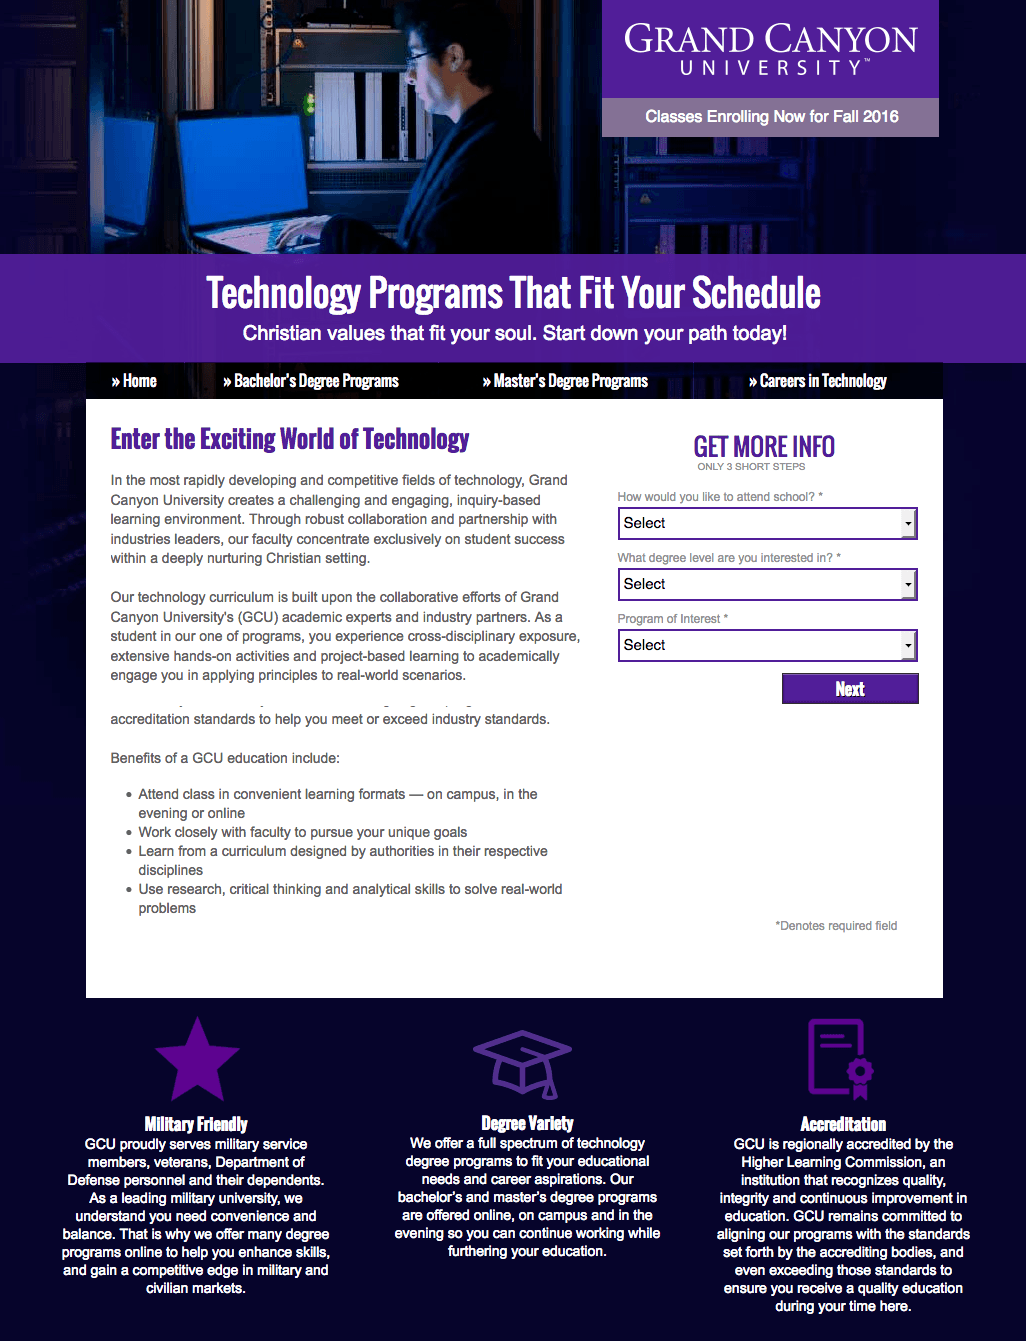 This picture shows marketers how Grand Canyon University uses an education landing page to generate new leads and student sign ups.